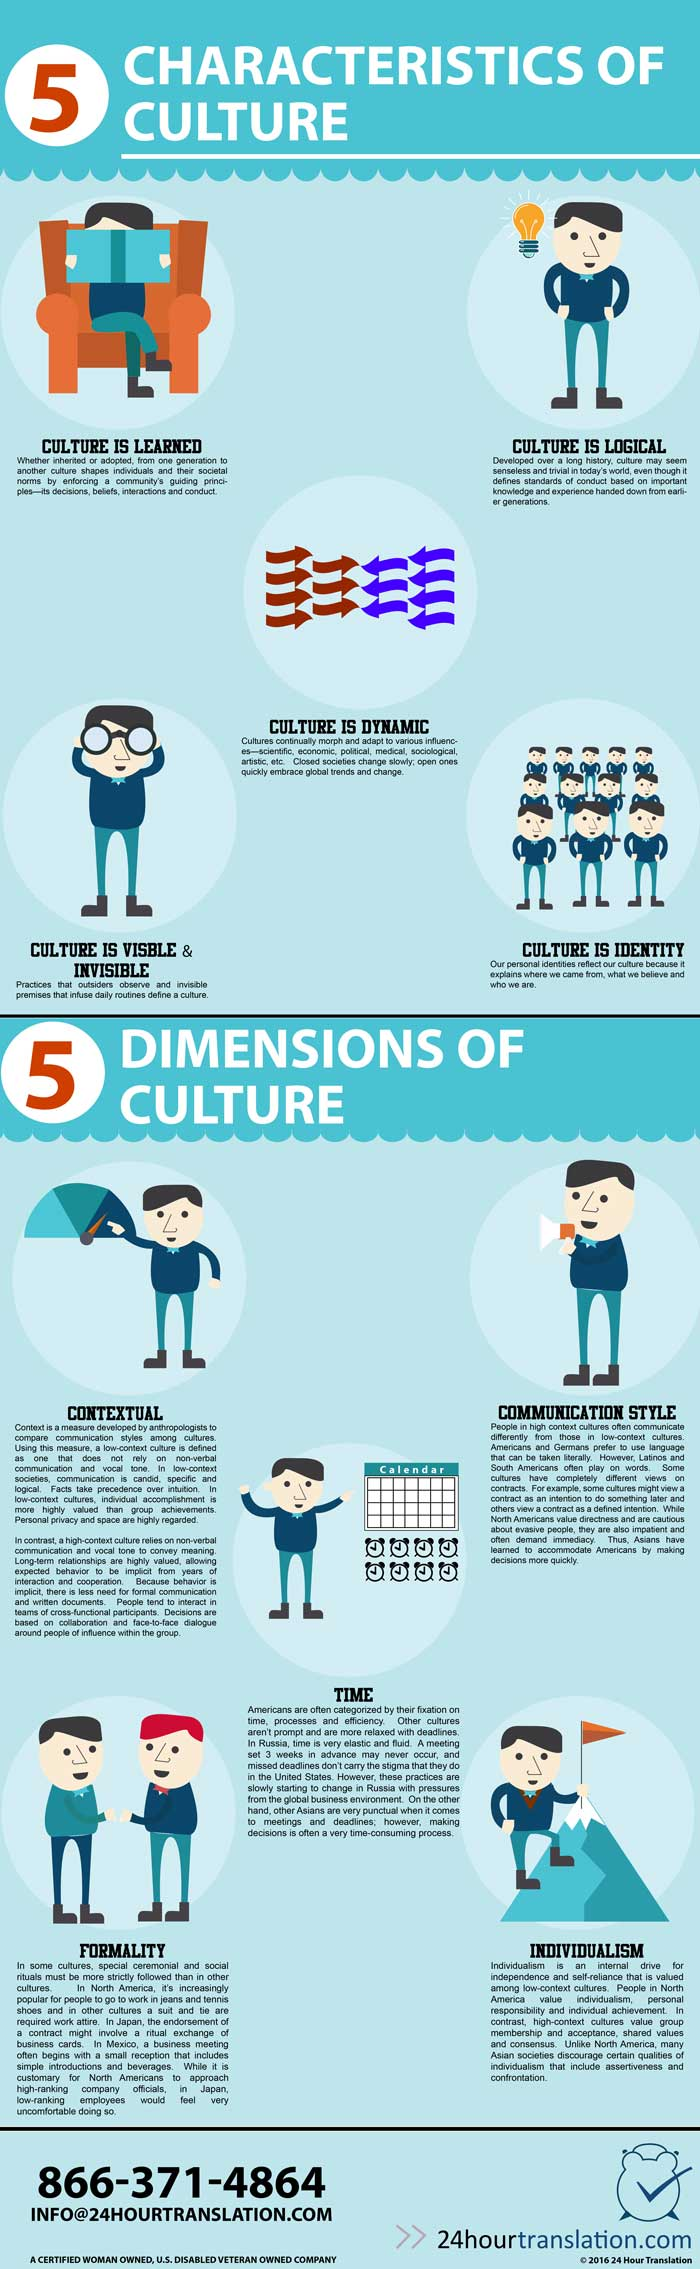 Culture is learned culture is dynamic culture is logical culture is visible, culture is contextual formaily individualism. Culture is dynamic, culture is enforced, culture is shared, and culture is leaned.